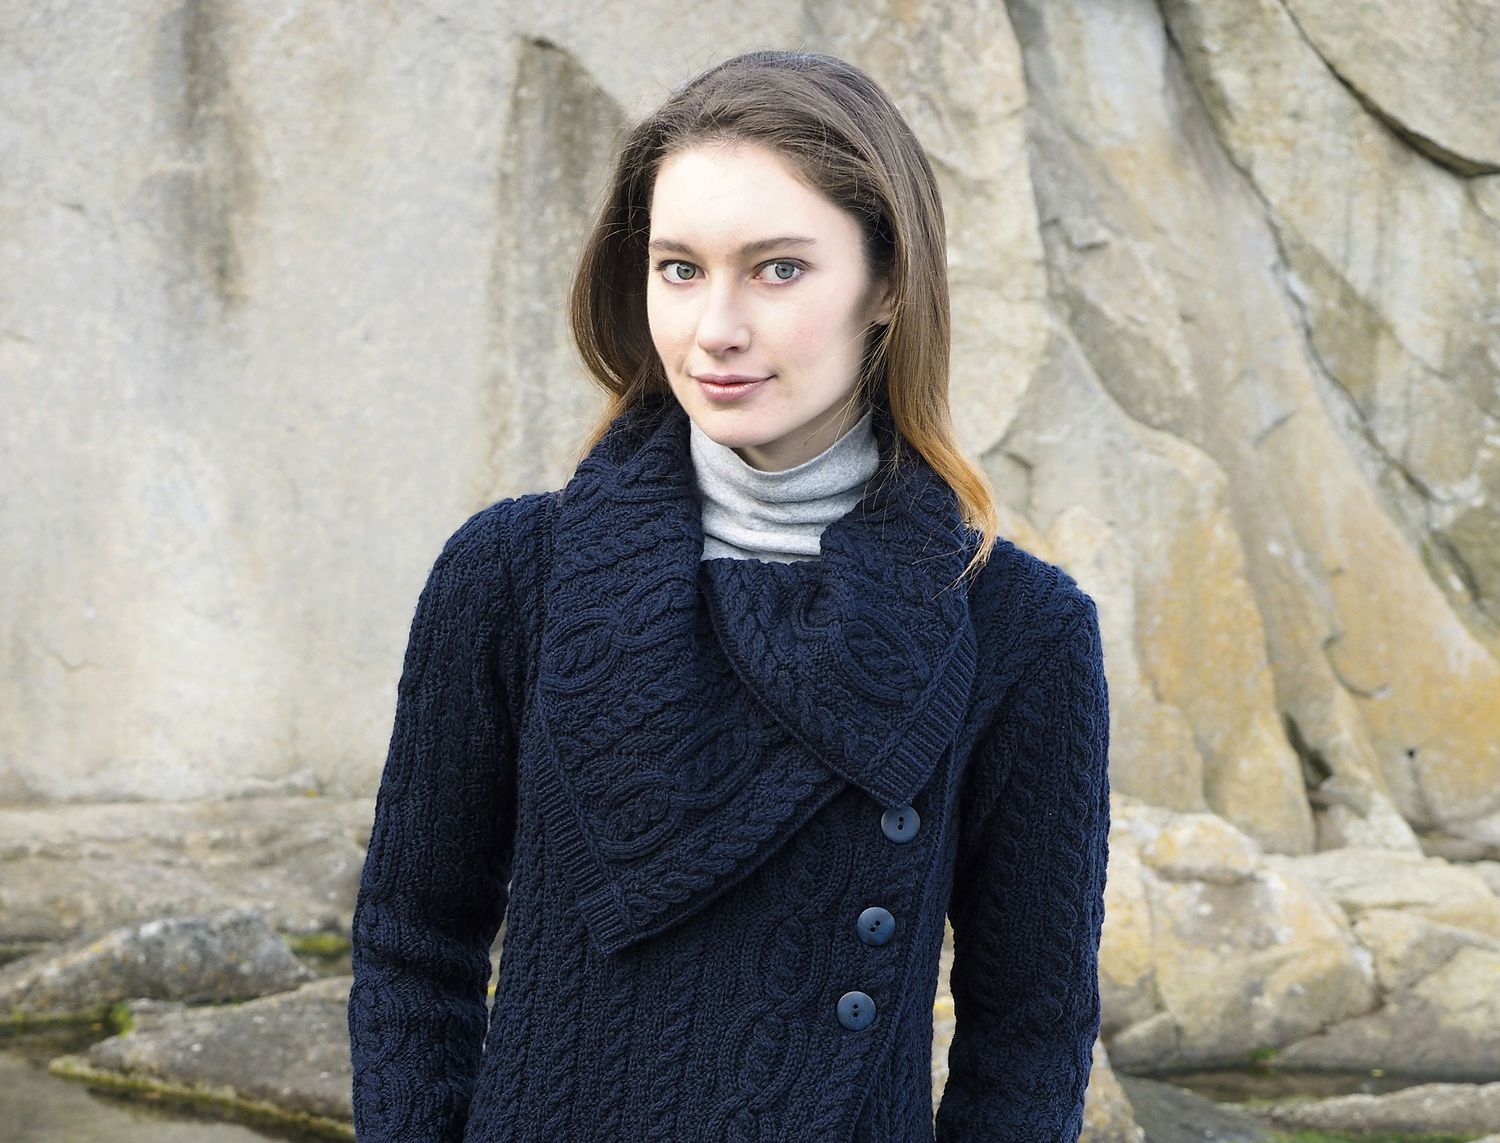 Woman in Blue Merino Wool Aran Cardigan Coat / Coatigan